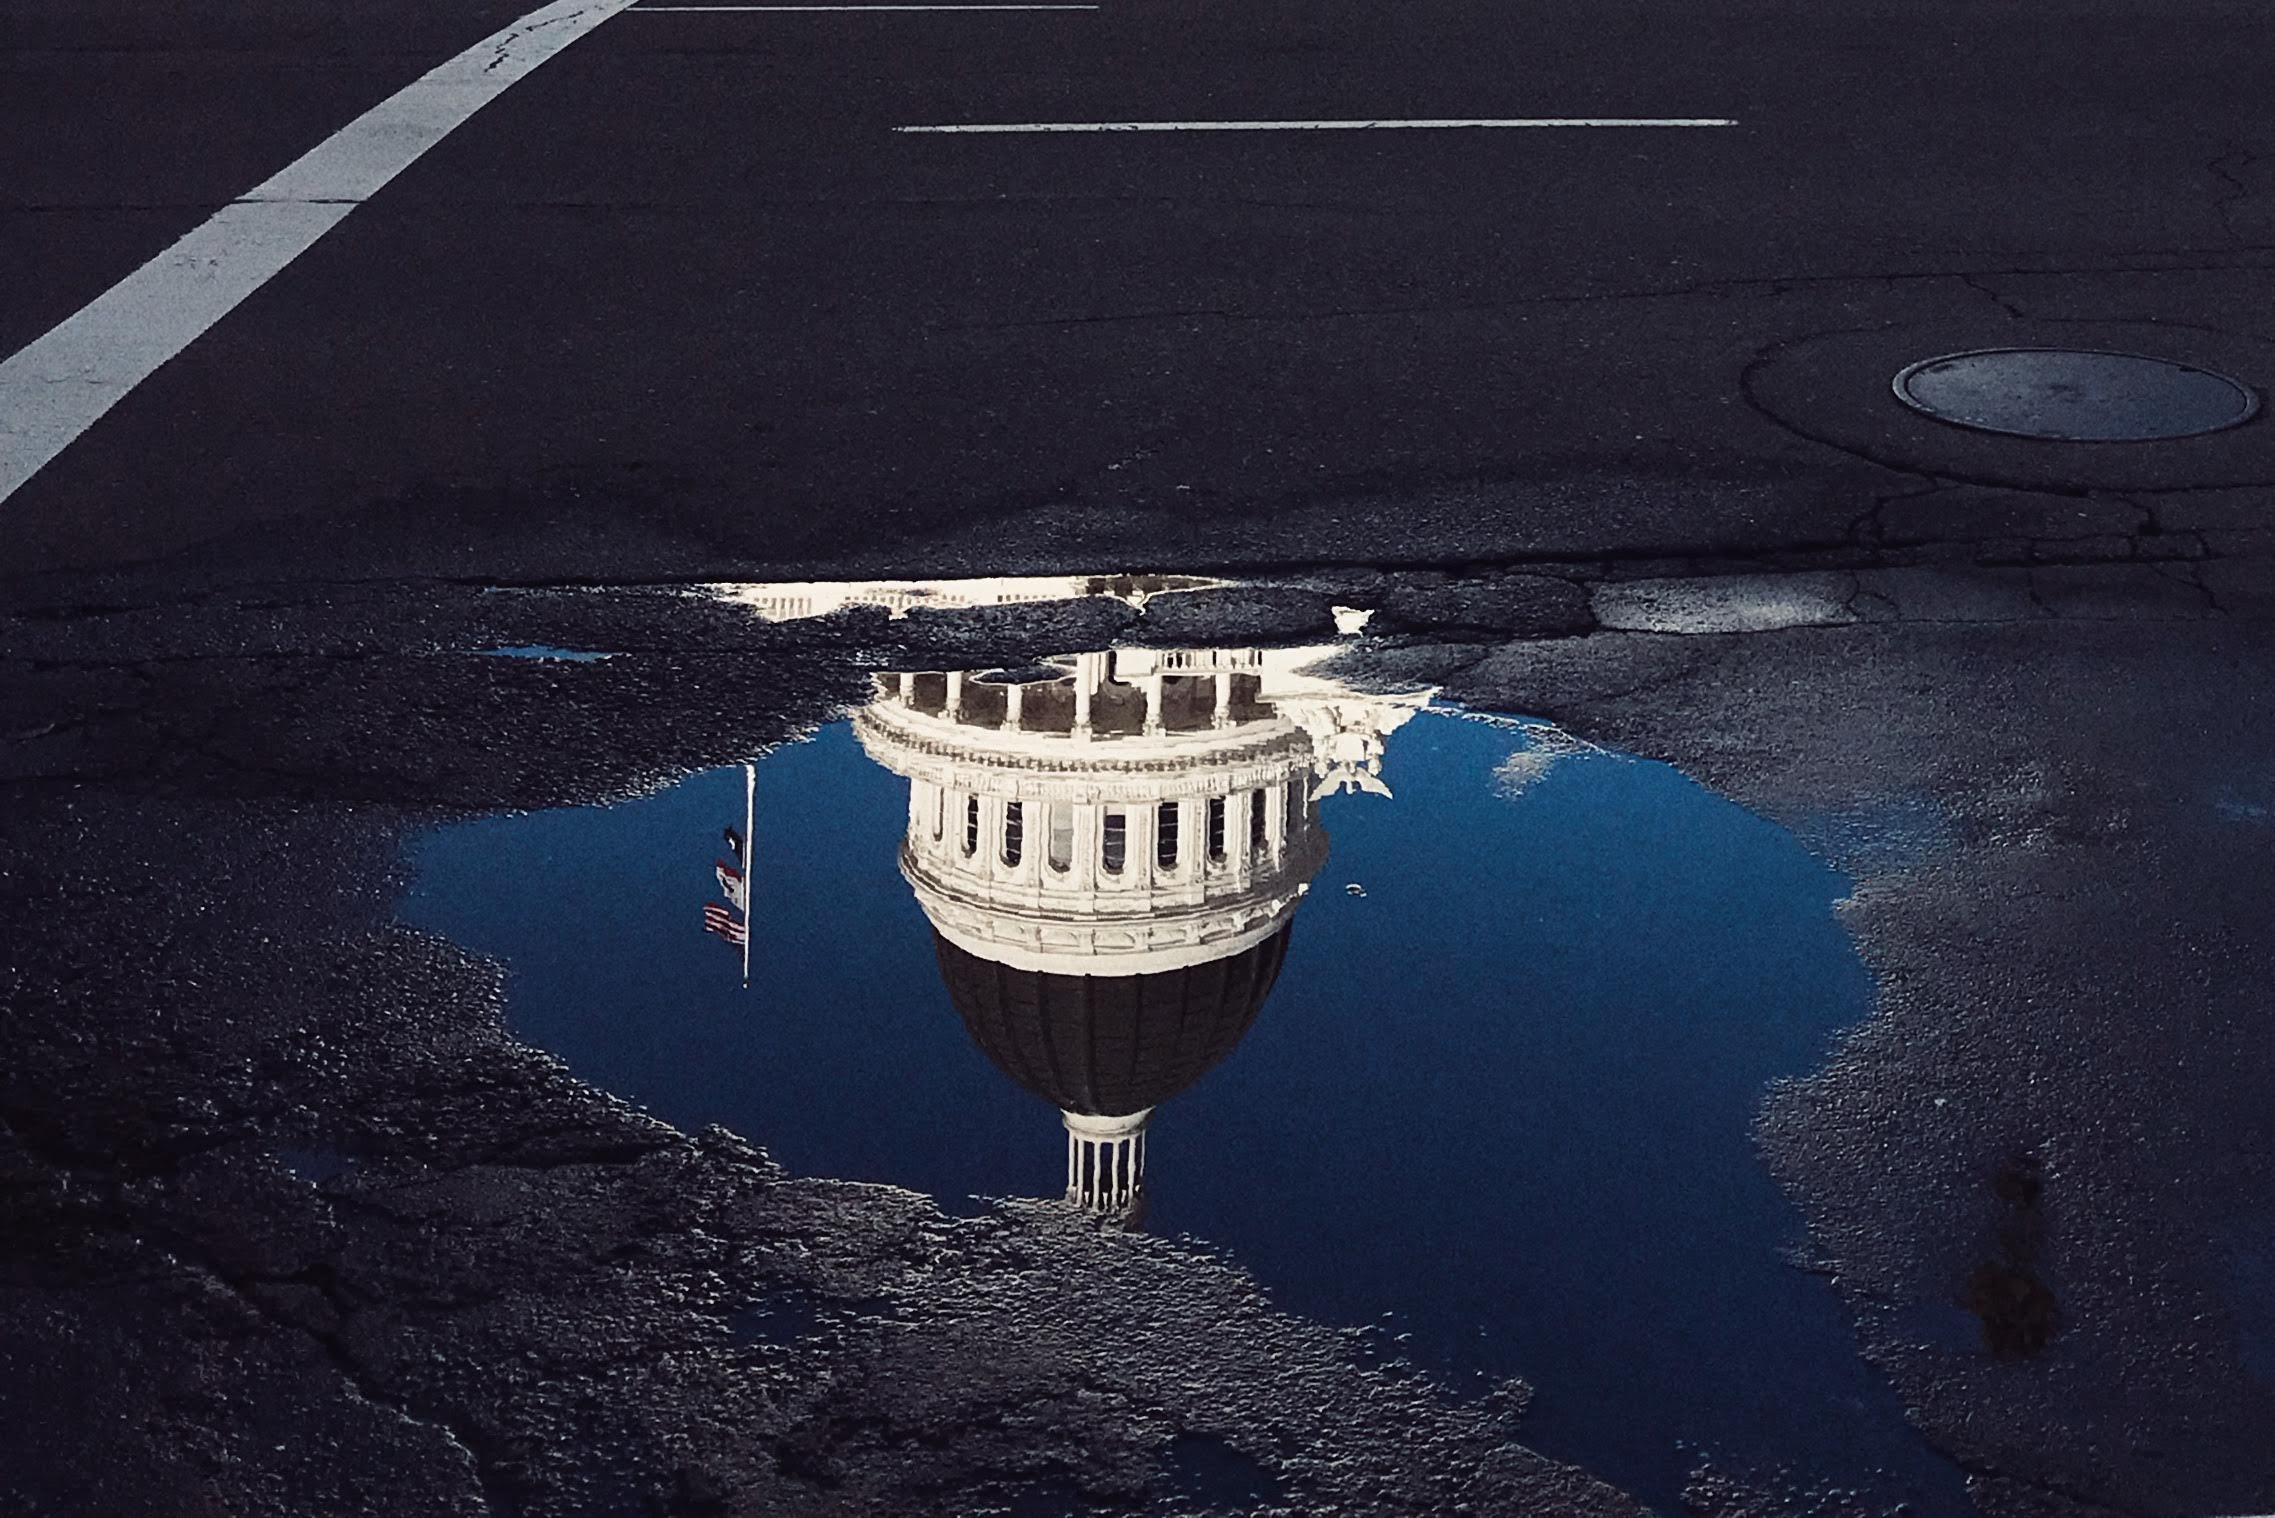 Reflection of the Capital